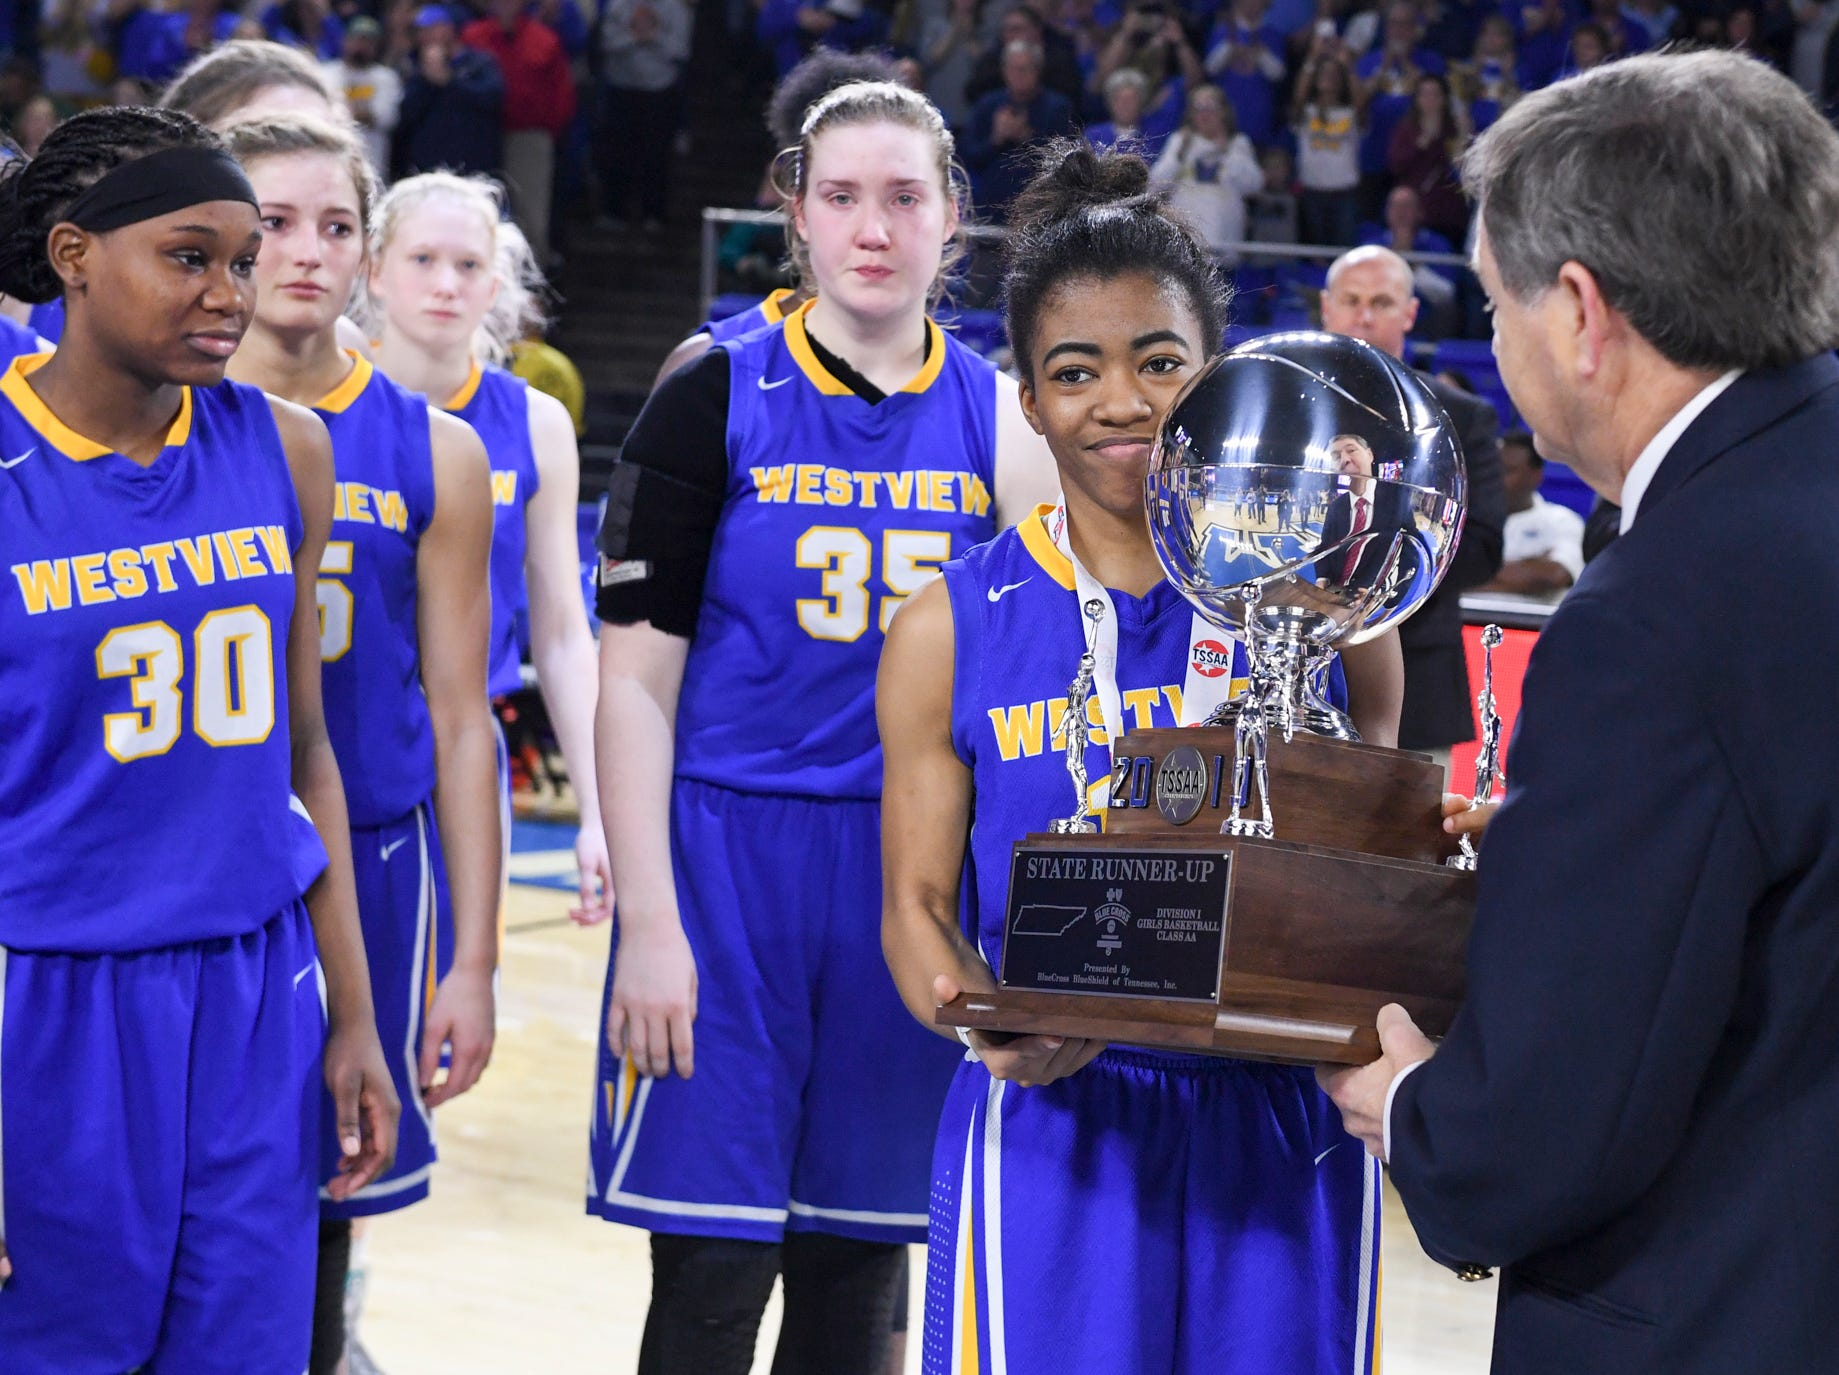 Westview's Zanasha Gadlen (10) received the 2019 Class AA state runner-up trophy, Saturday, March 9, 2019, in Murfreesboro. Westview fell to Cheatham County, 43-40.